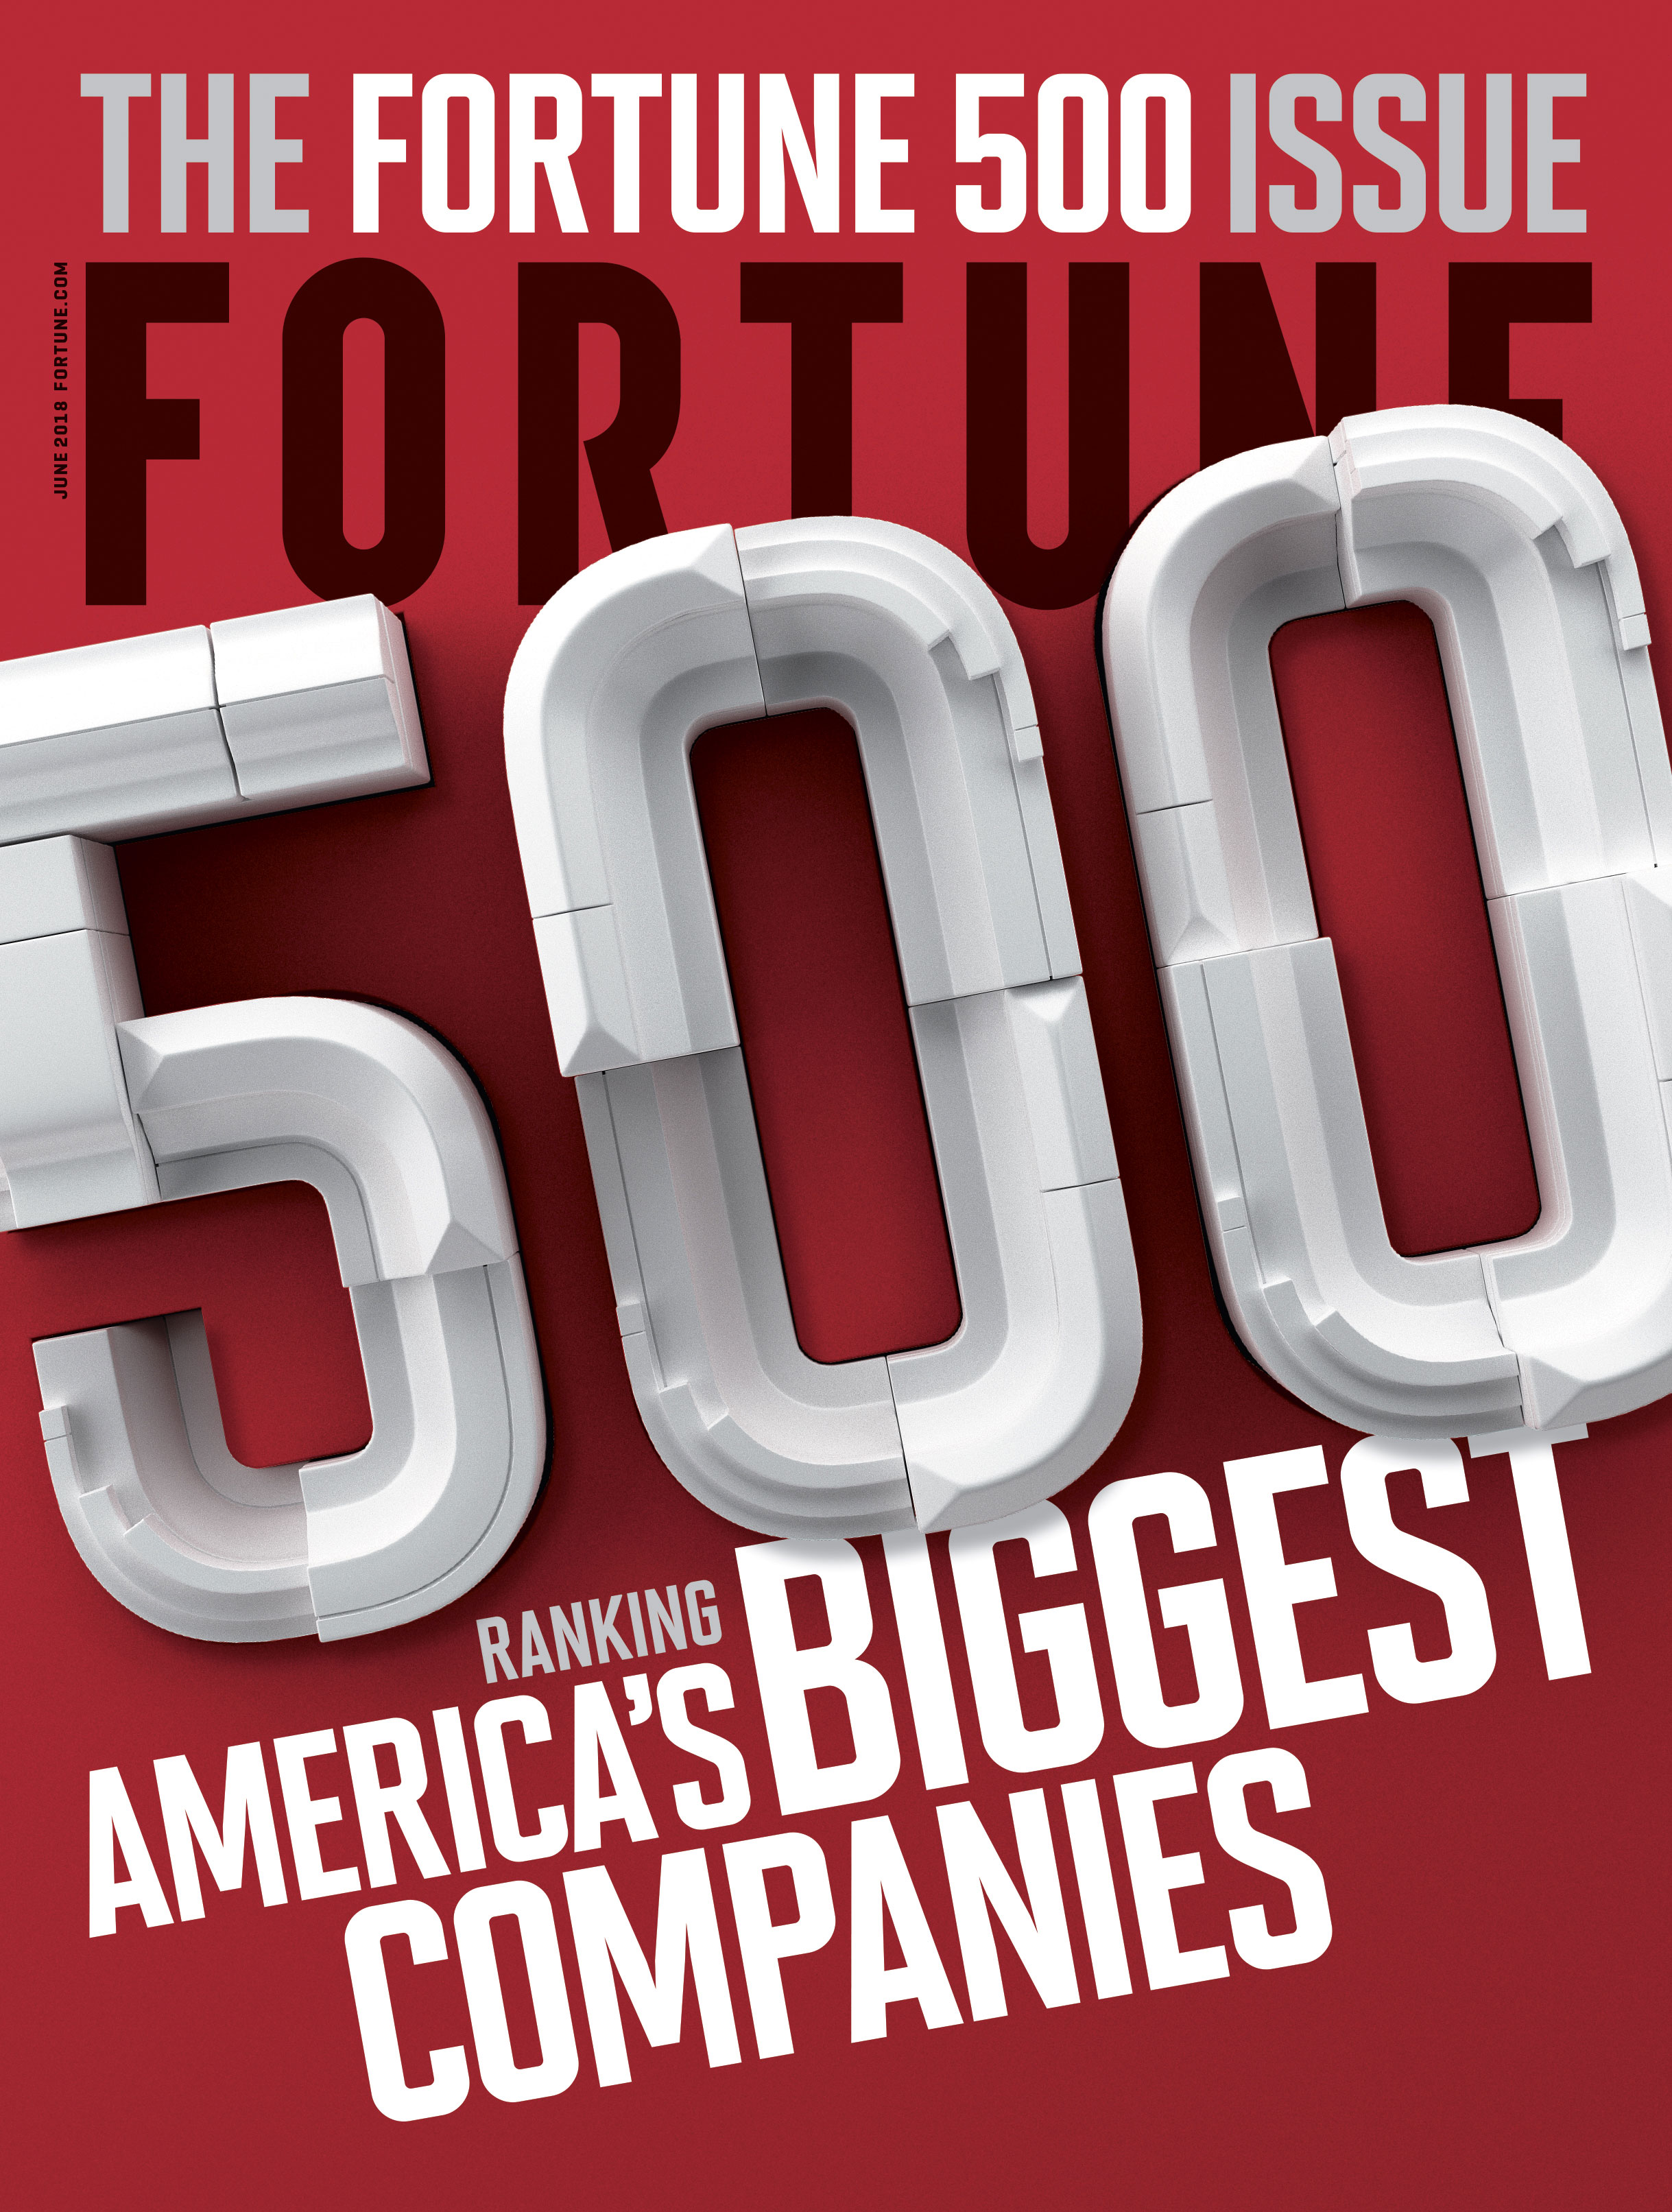 Almost half of Fortune 100 companies including Amazon, Alphabet (Google), Apple were founded in part by first- or second-generation immigrant entrepreneurs.